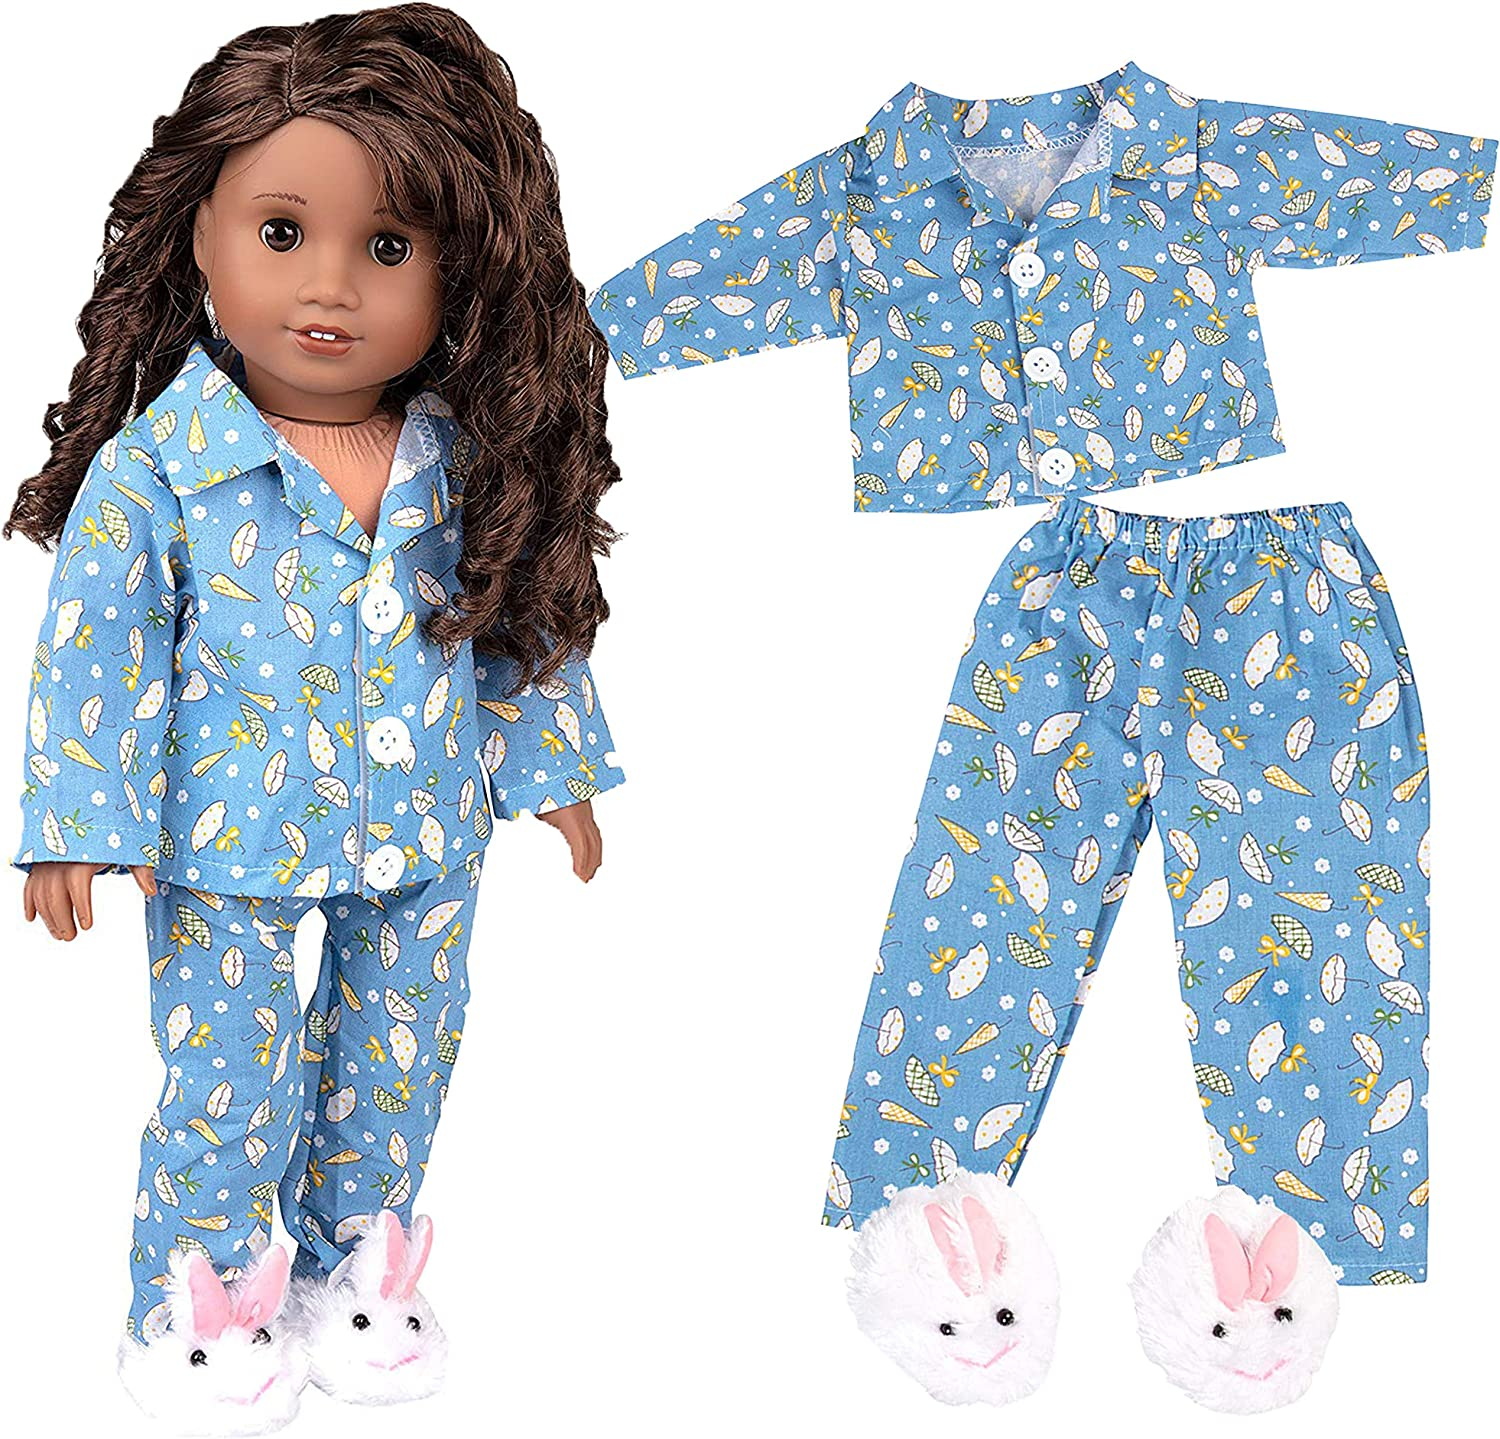 Handmade Doll Clothes Pajamas Top and Pants fit 18 American Girl or Boy Dolls Christmas